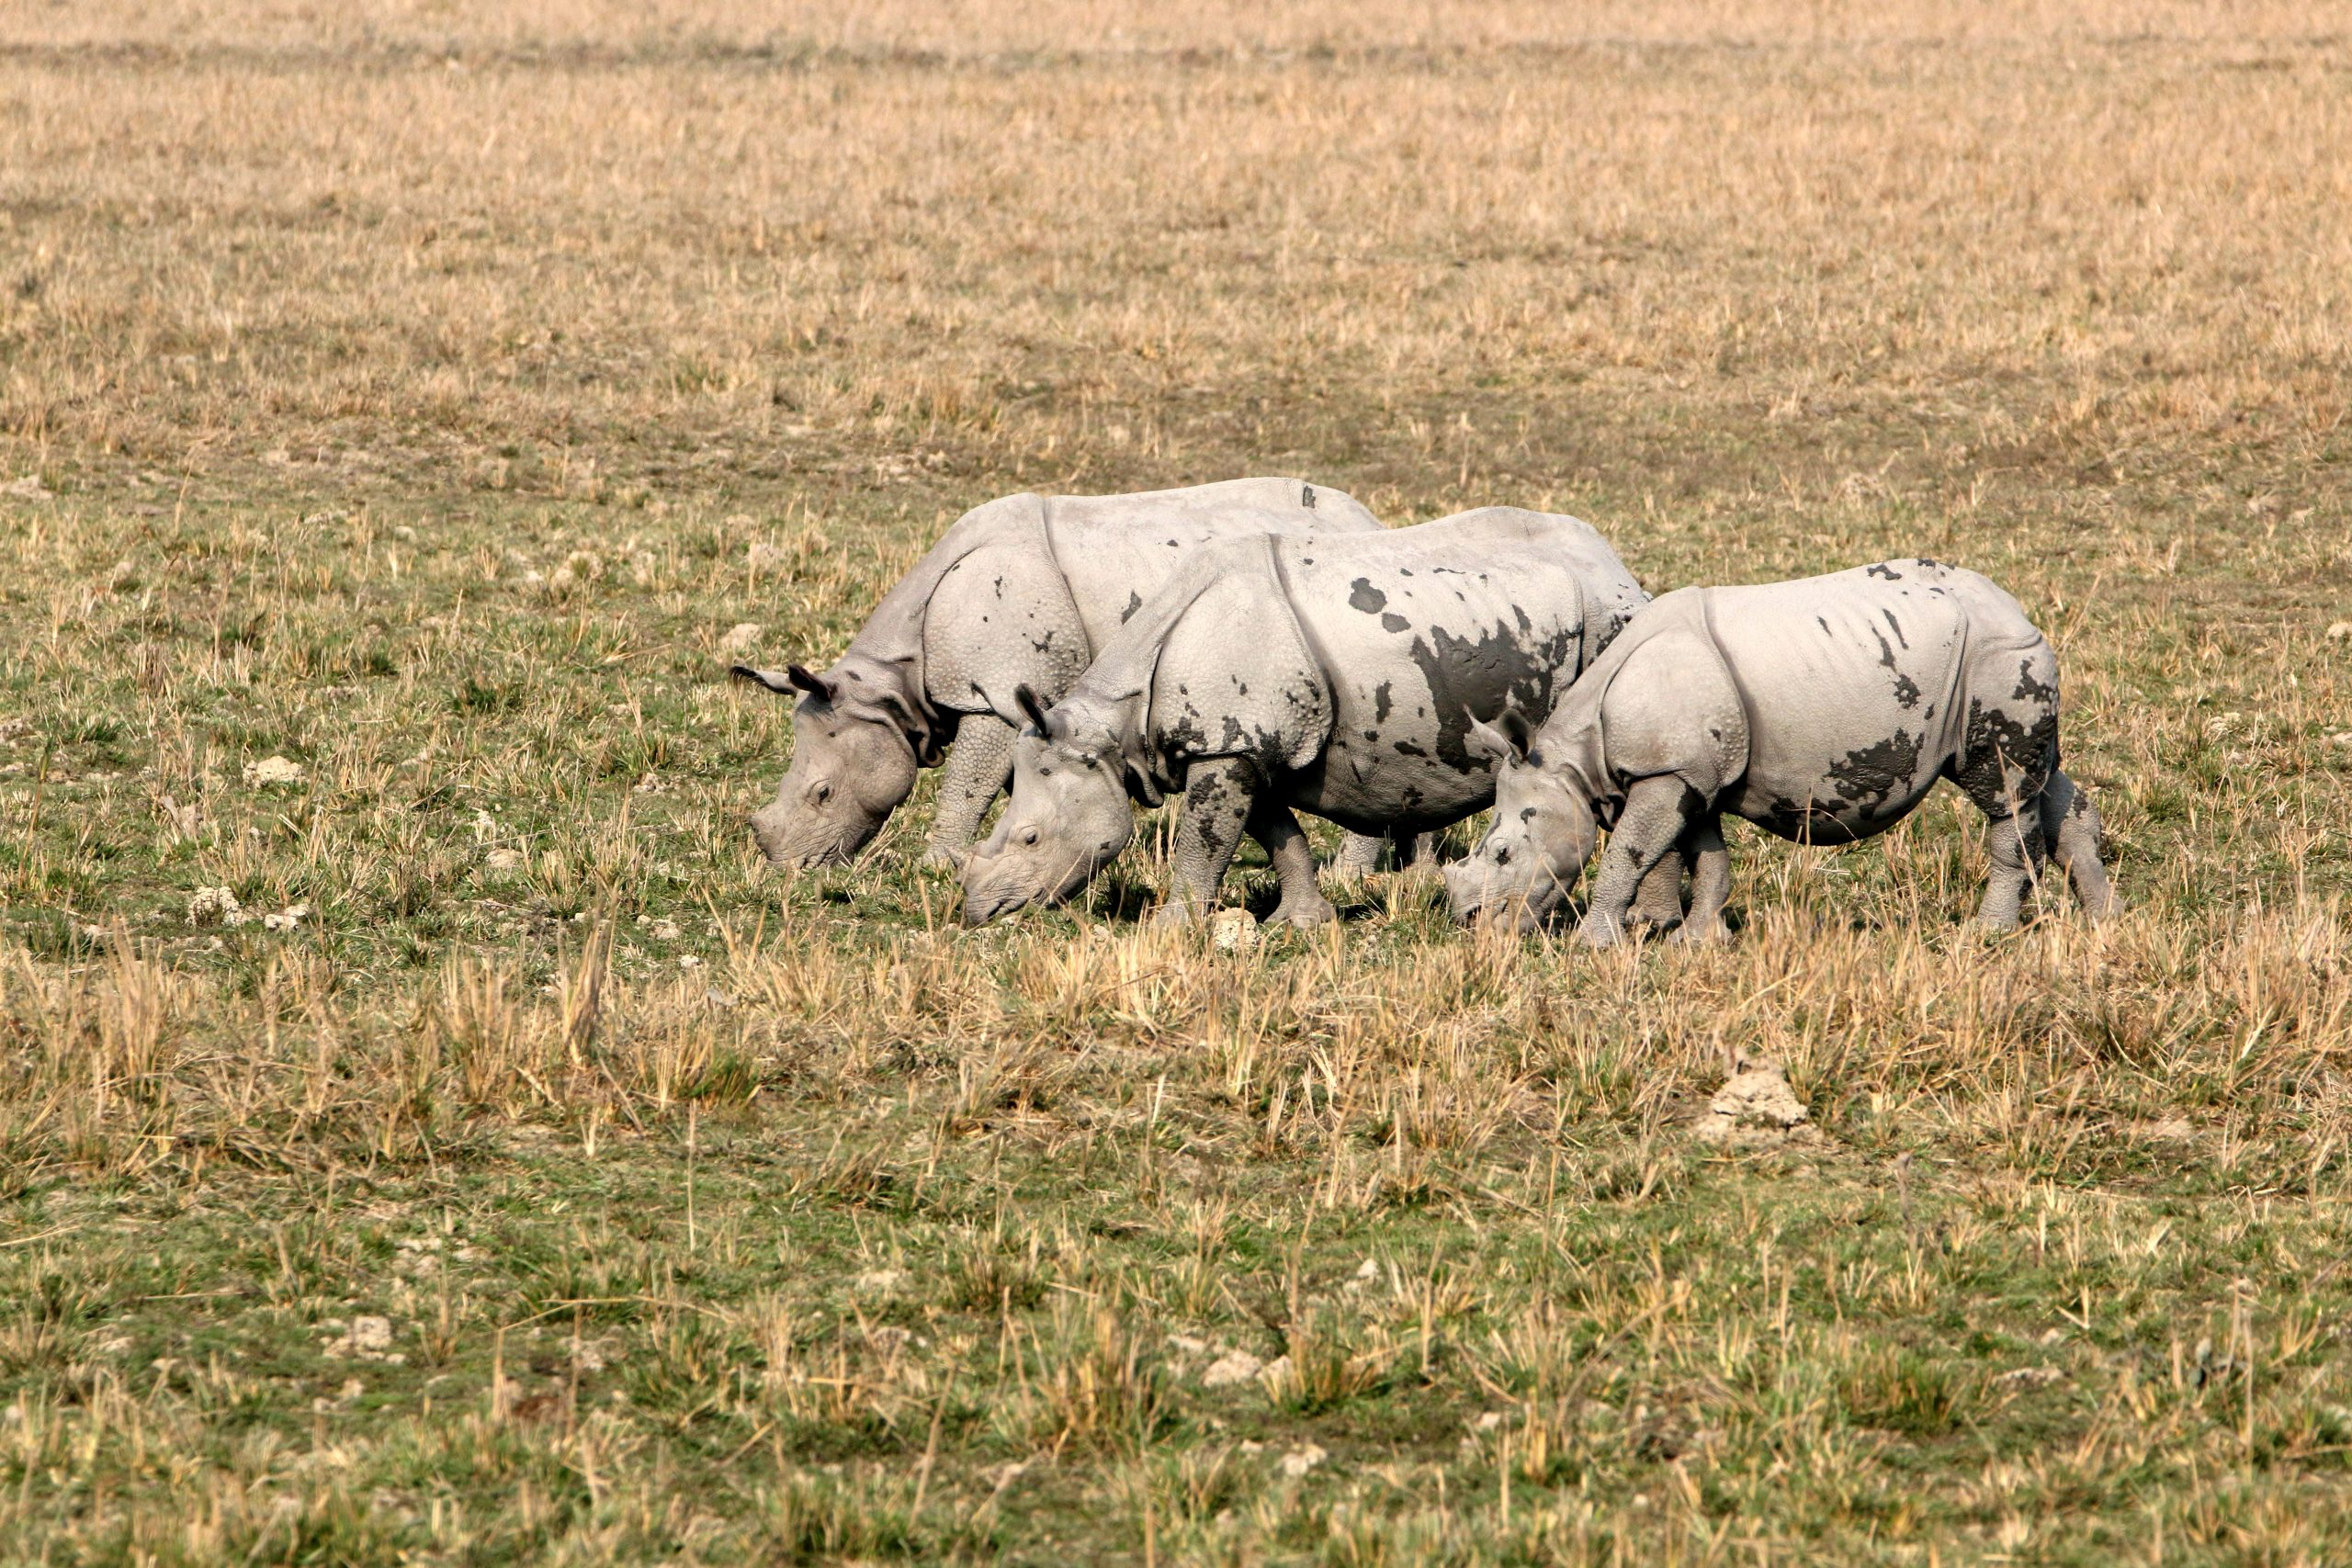 A White Rhinoceros Grazing on the Land